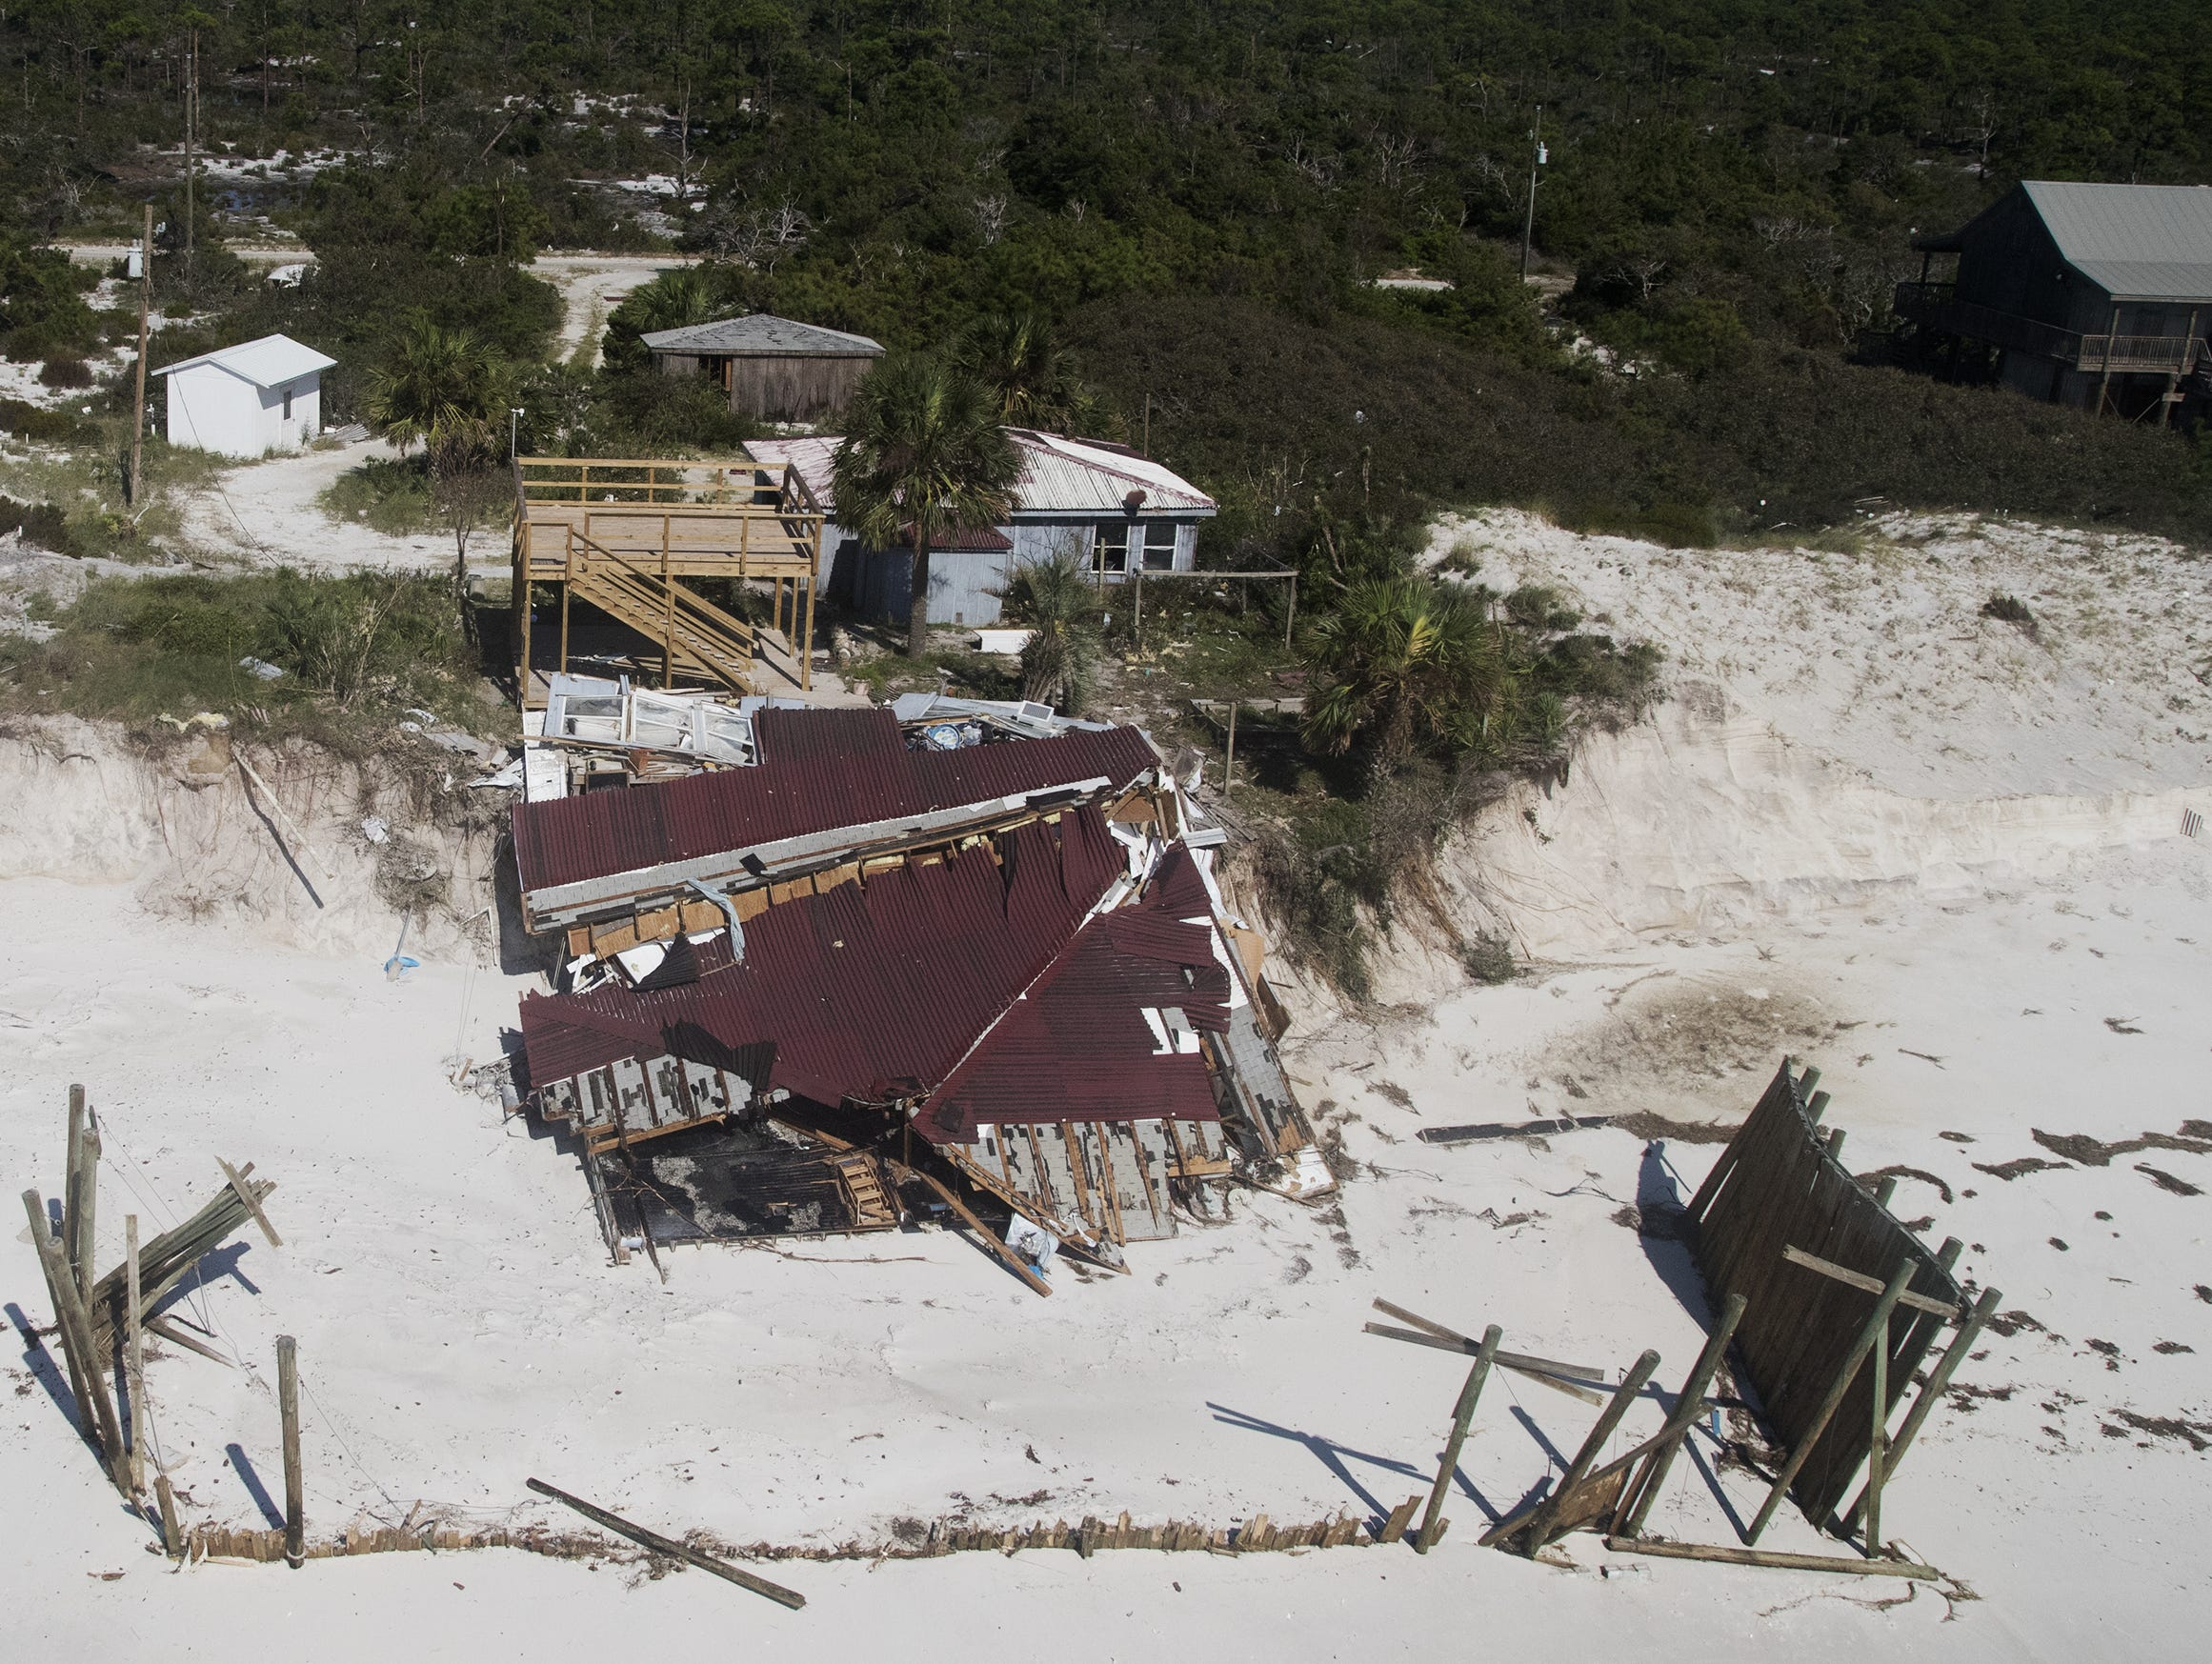 Hurricane Michael damaged several homes on Dog Island in Franklin County, Florida. (Picture date: 10/11/18).